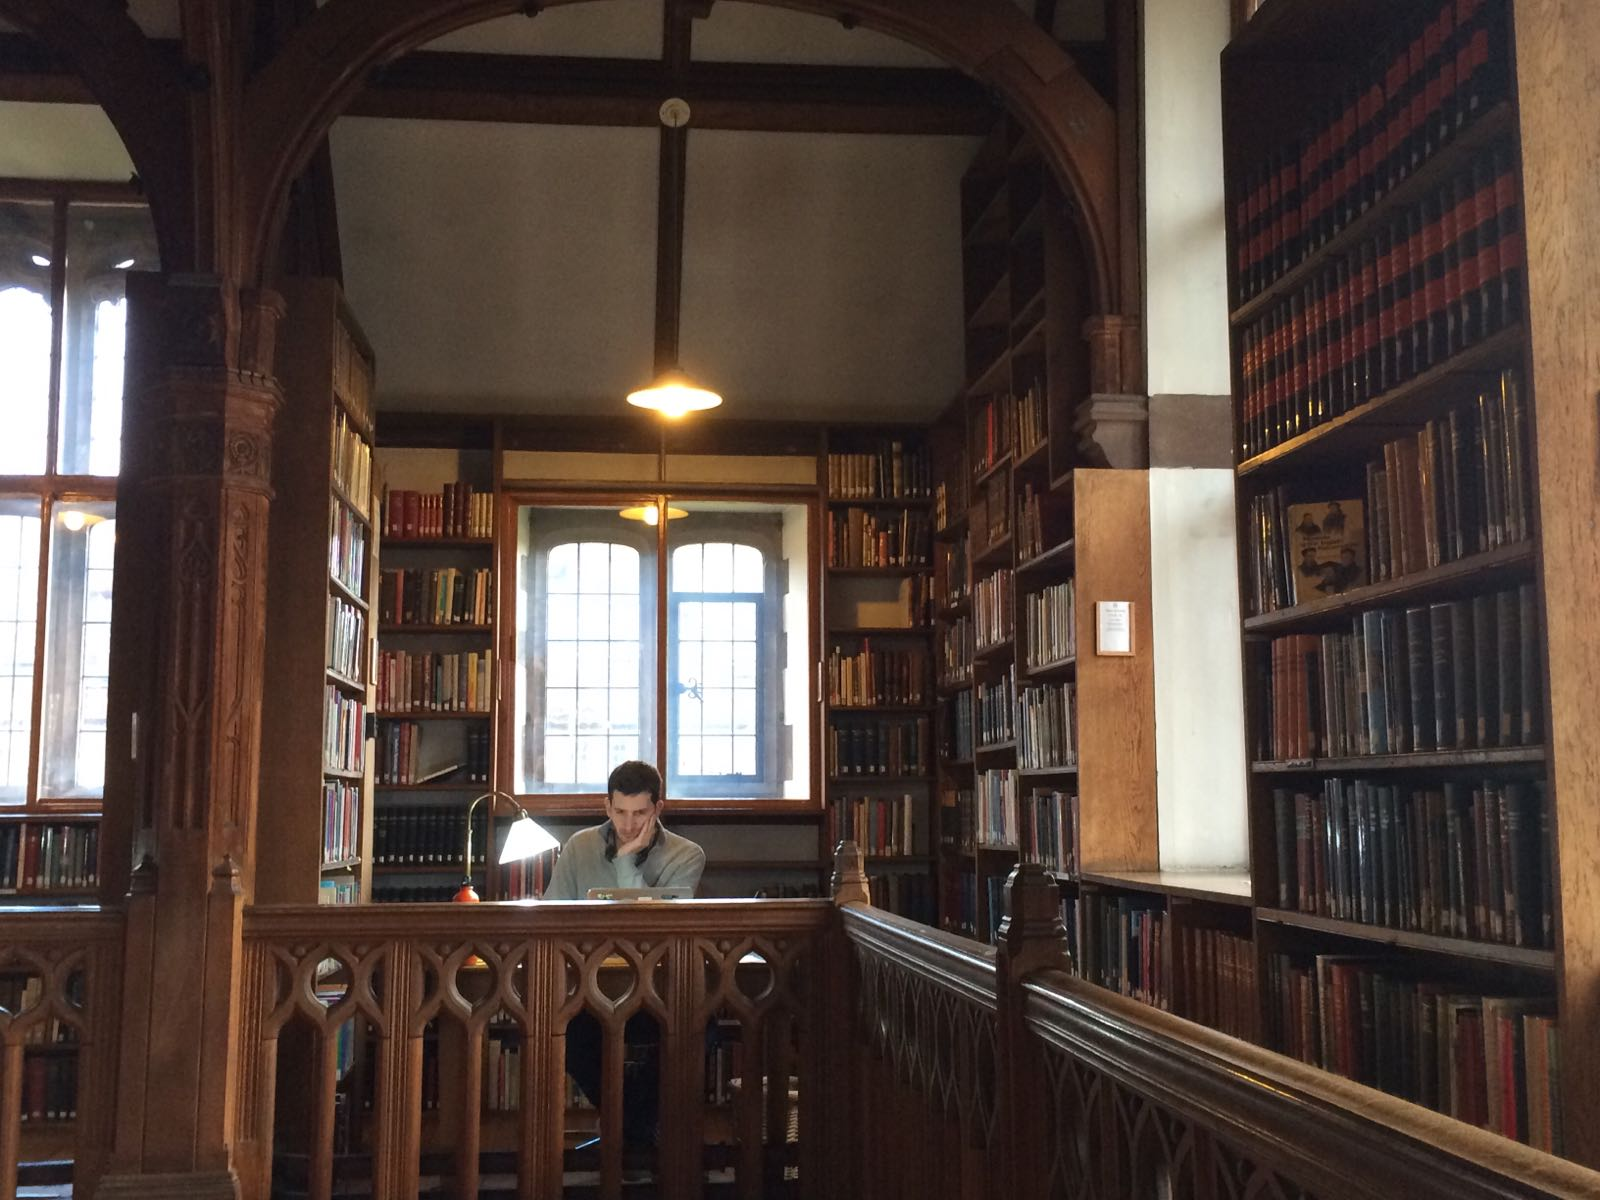 Paul looking thoughtful in Gladstone's library